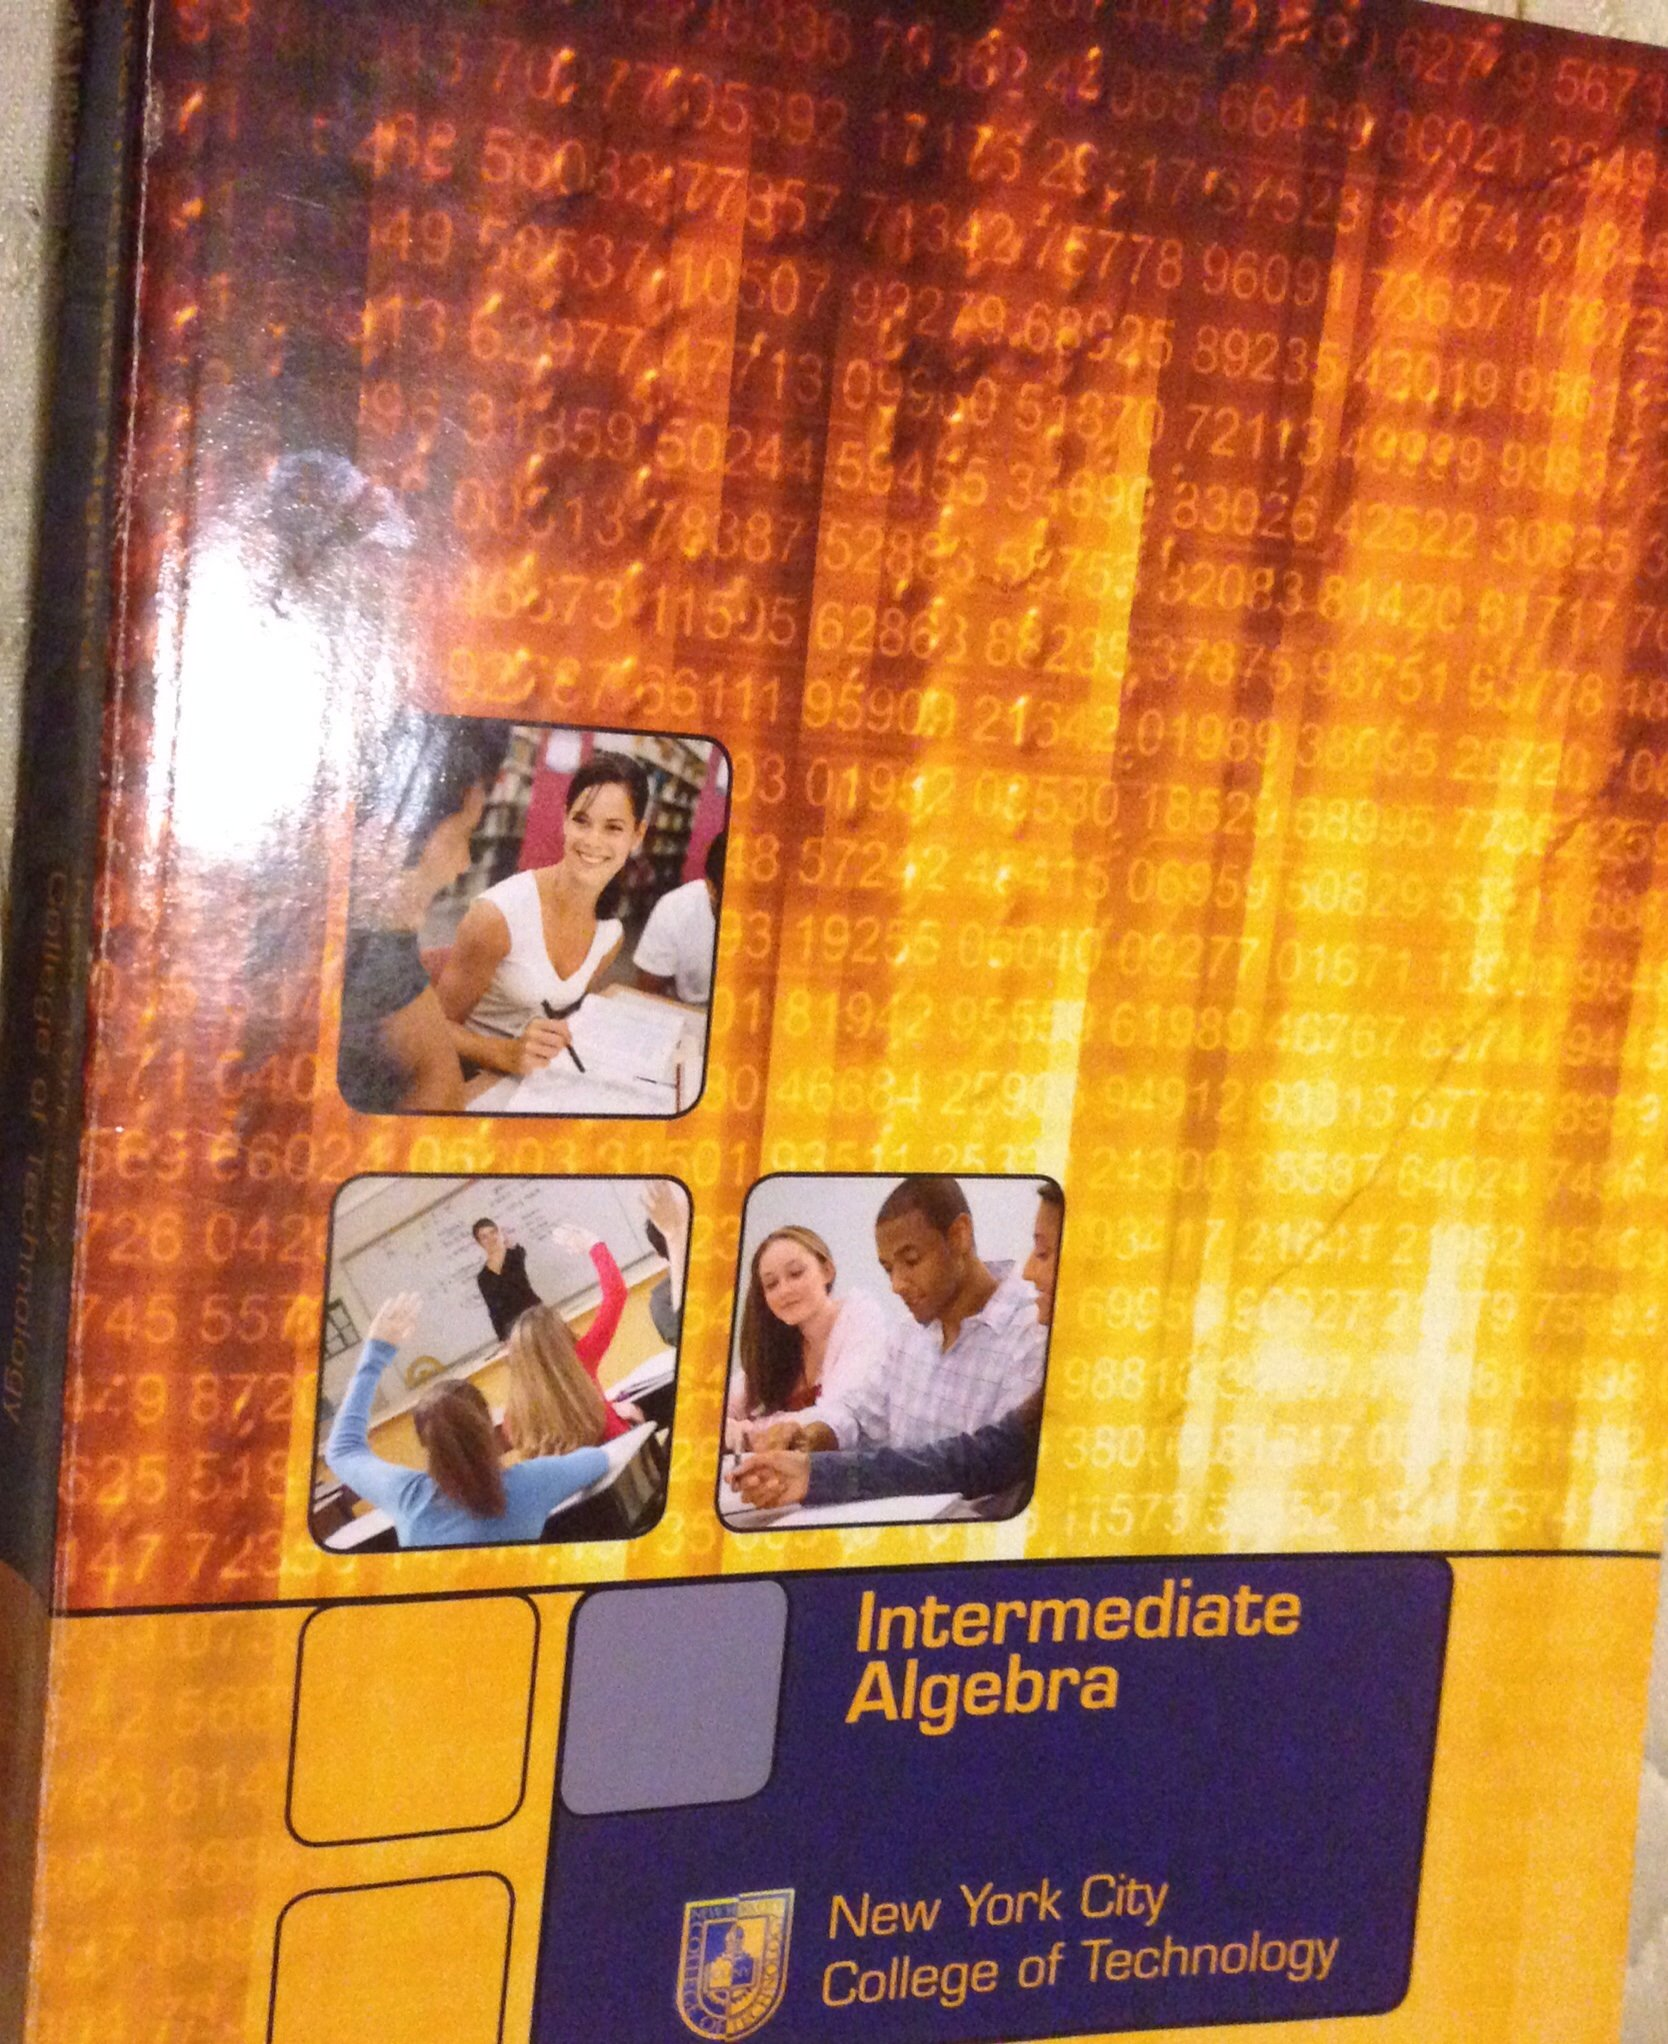 Intermediate algebra custom new york city college of technology intermediate algebra custom new york city college of technology custom julie miller molly oneill nancy hyde 9780077503383 amazon books fandeluxe Image collections